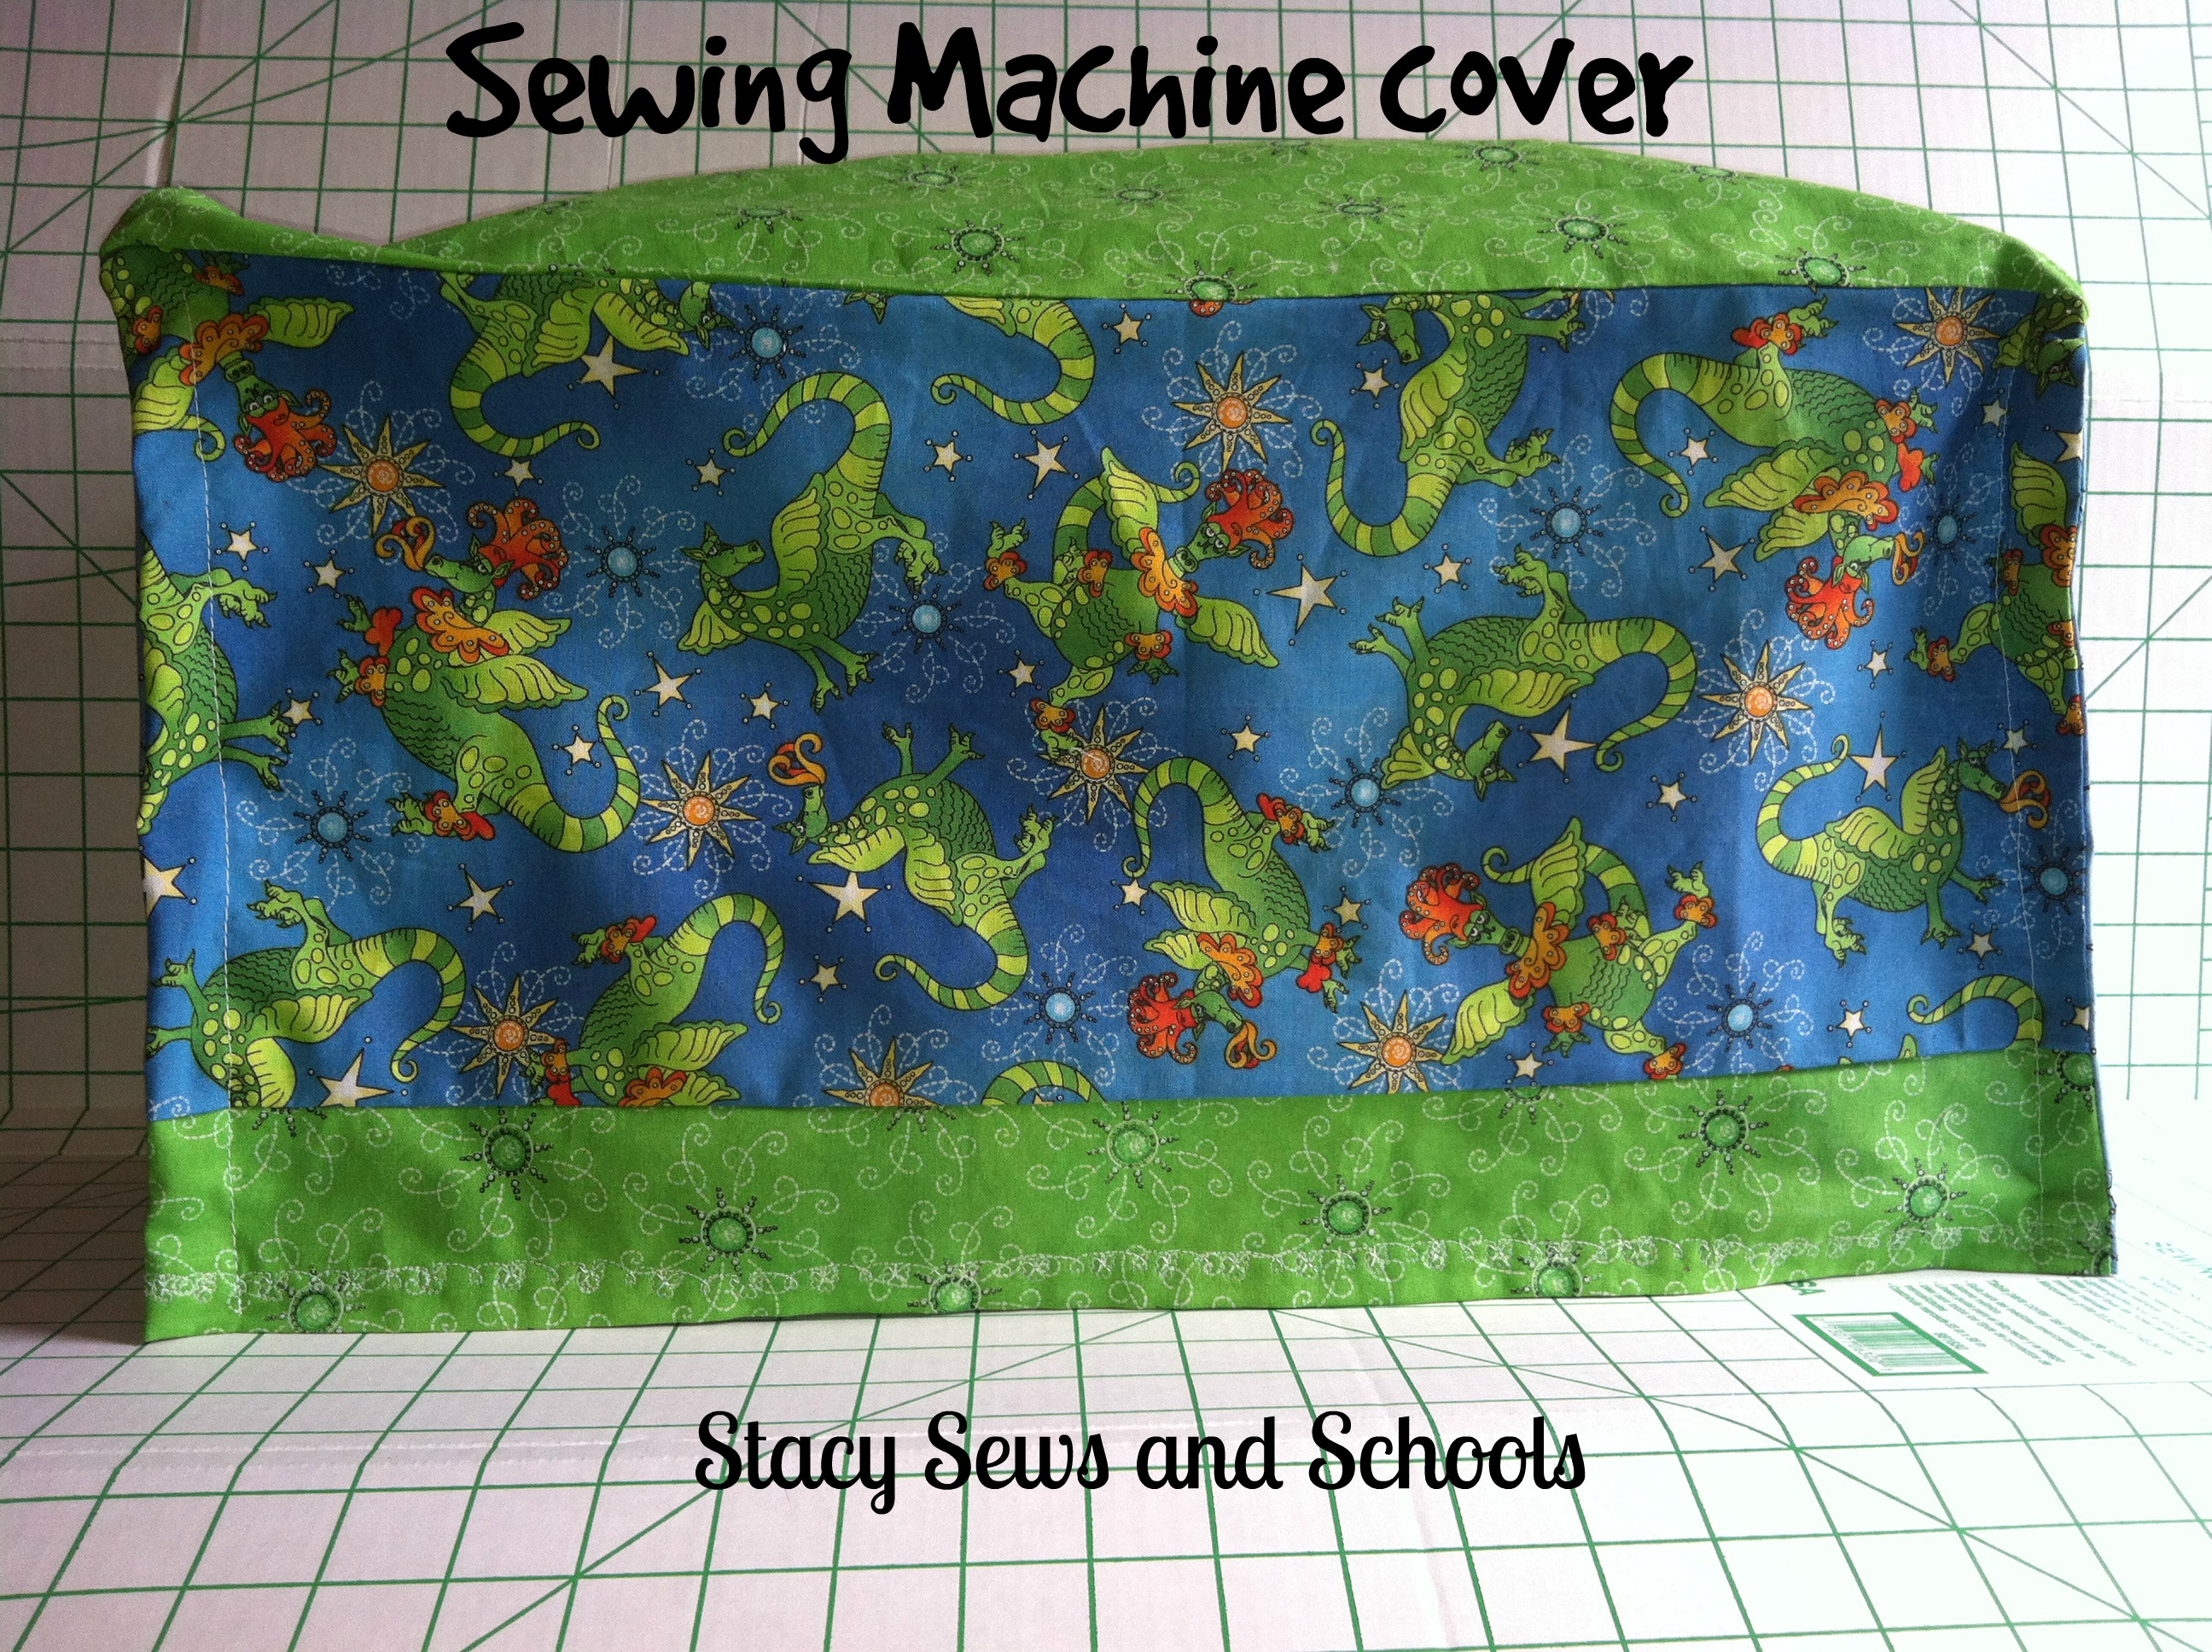 Sewing Machine Cover 2